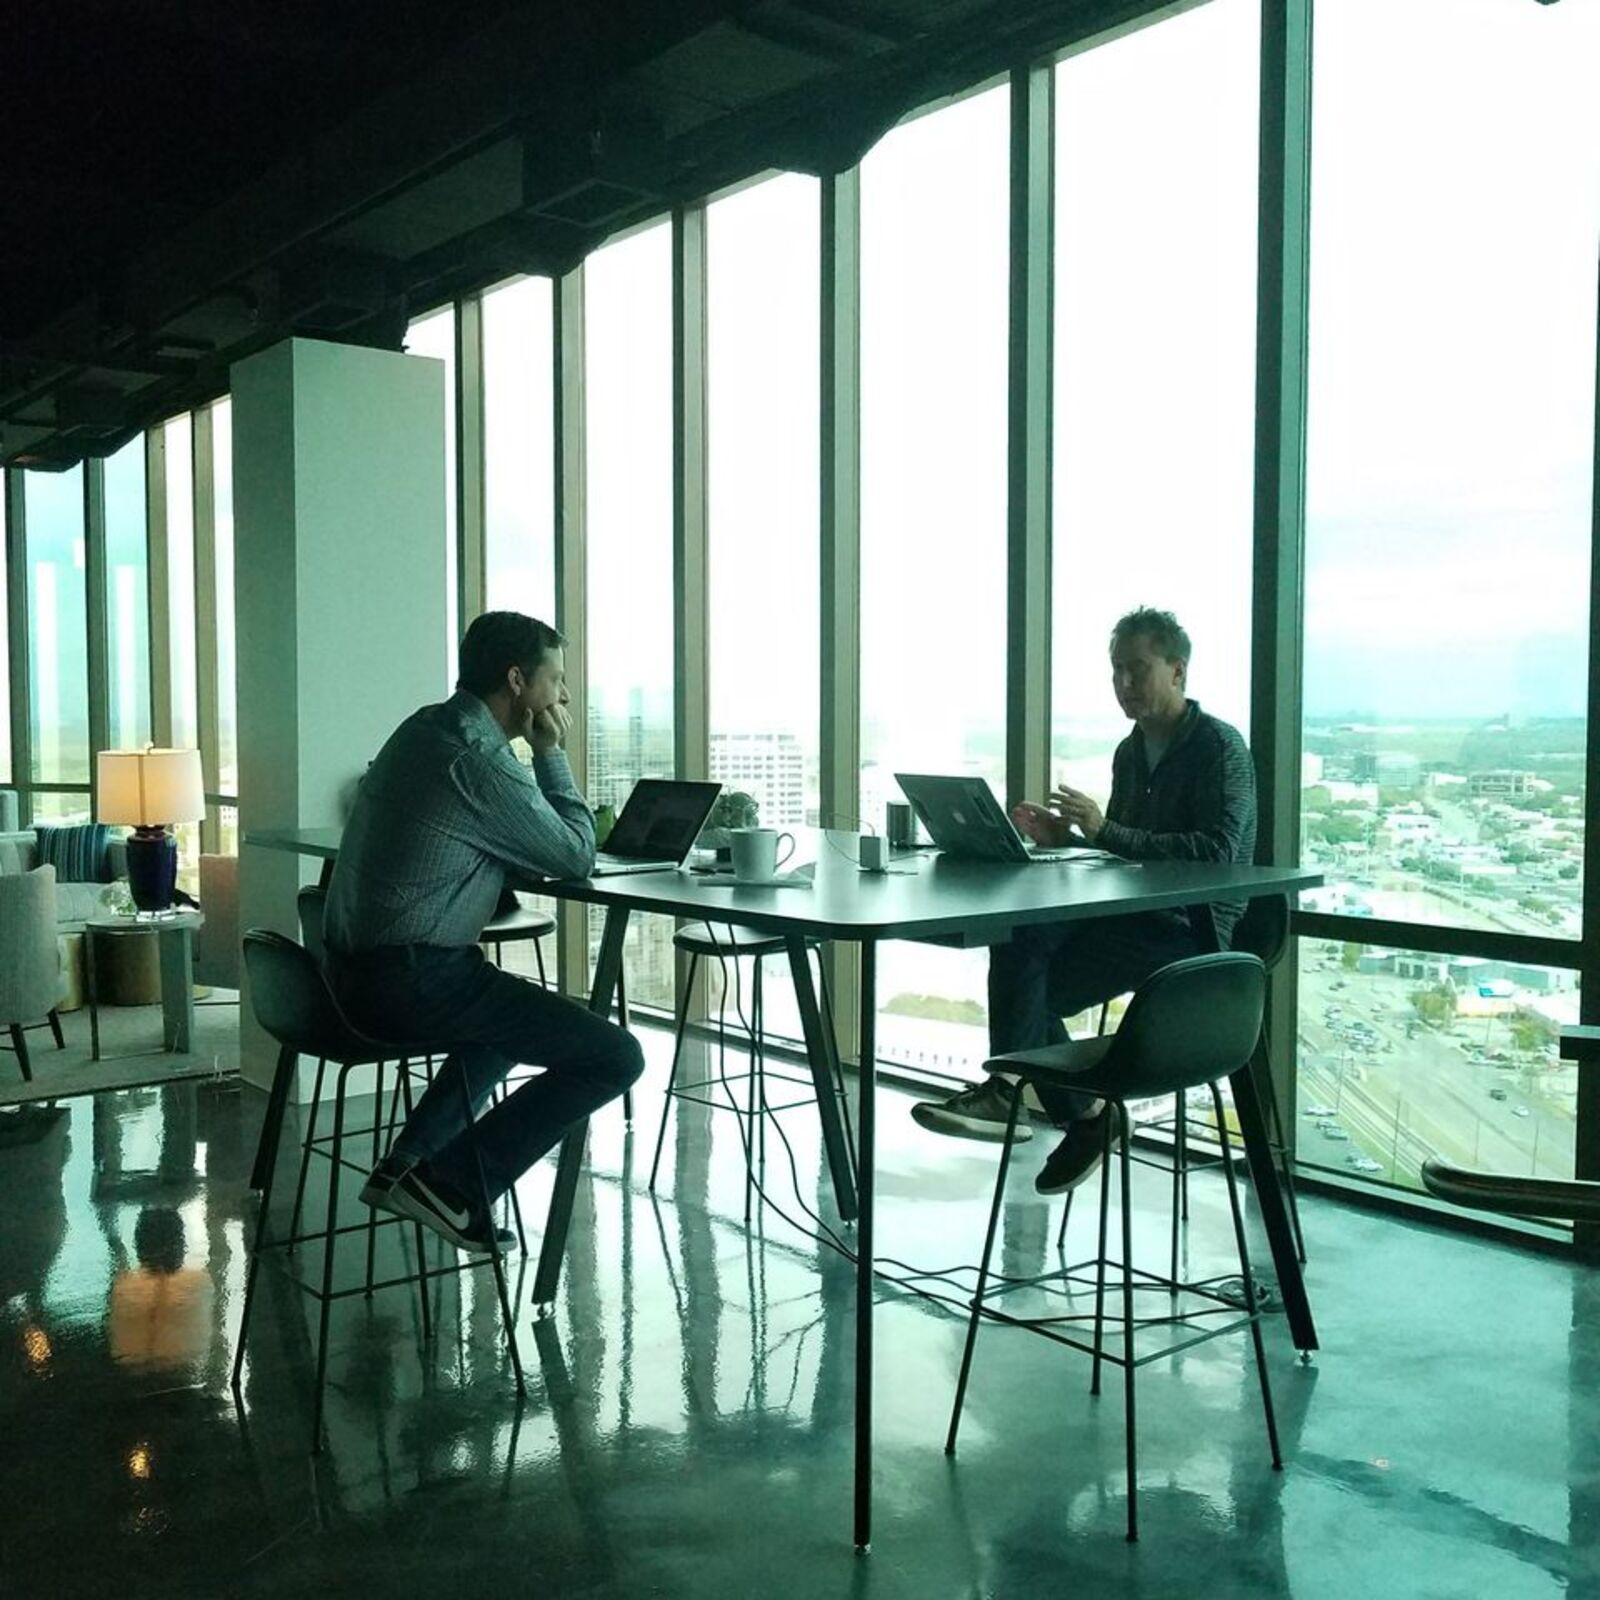 Ways to Make the Most of Your Coworking Space